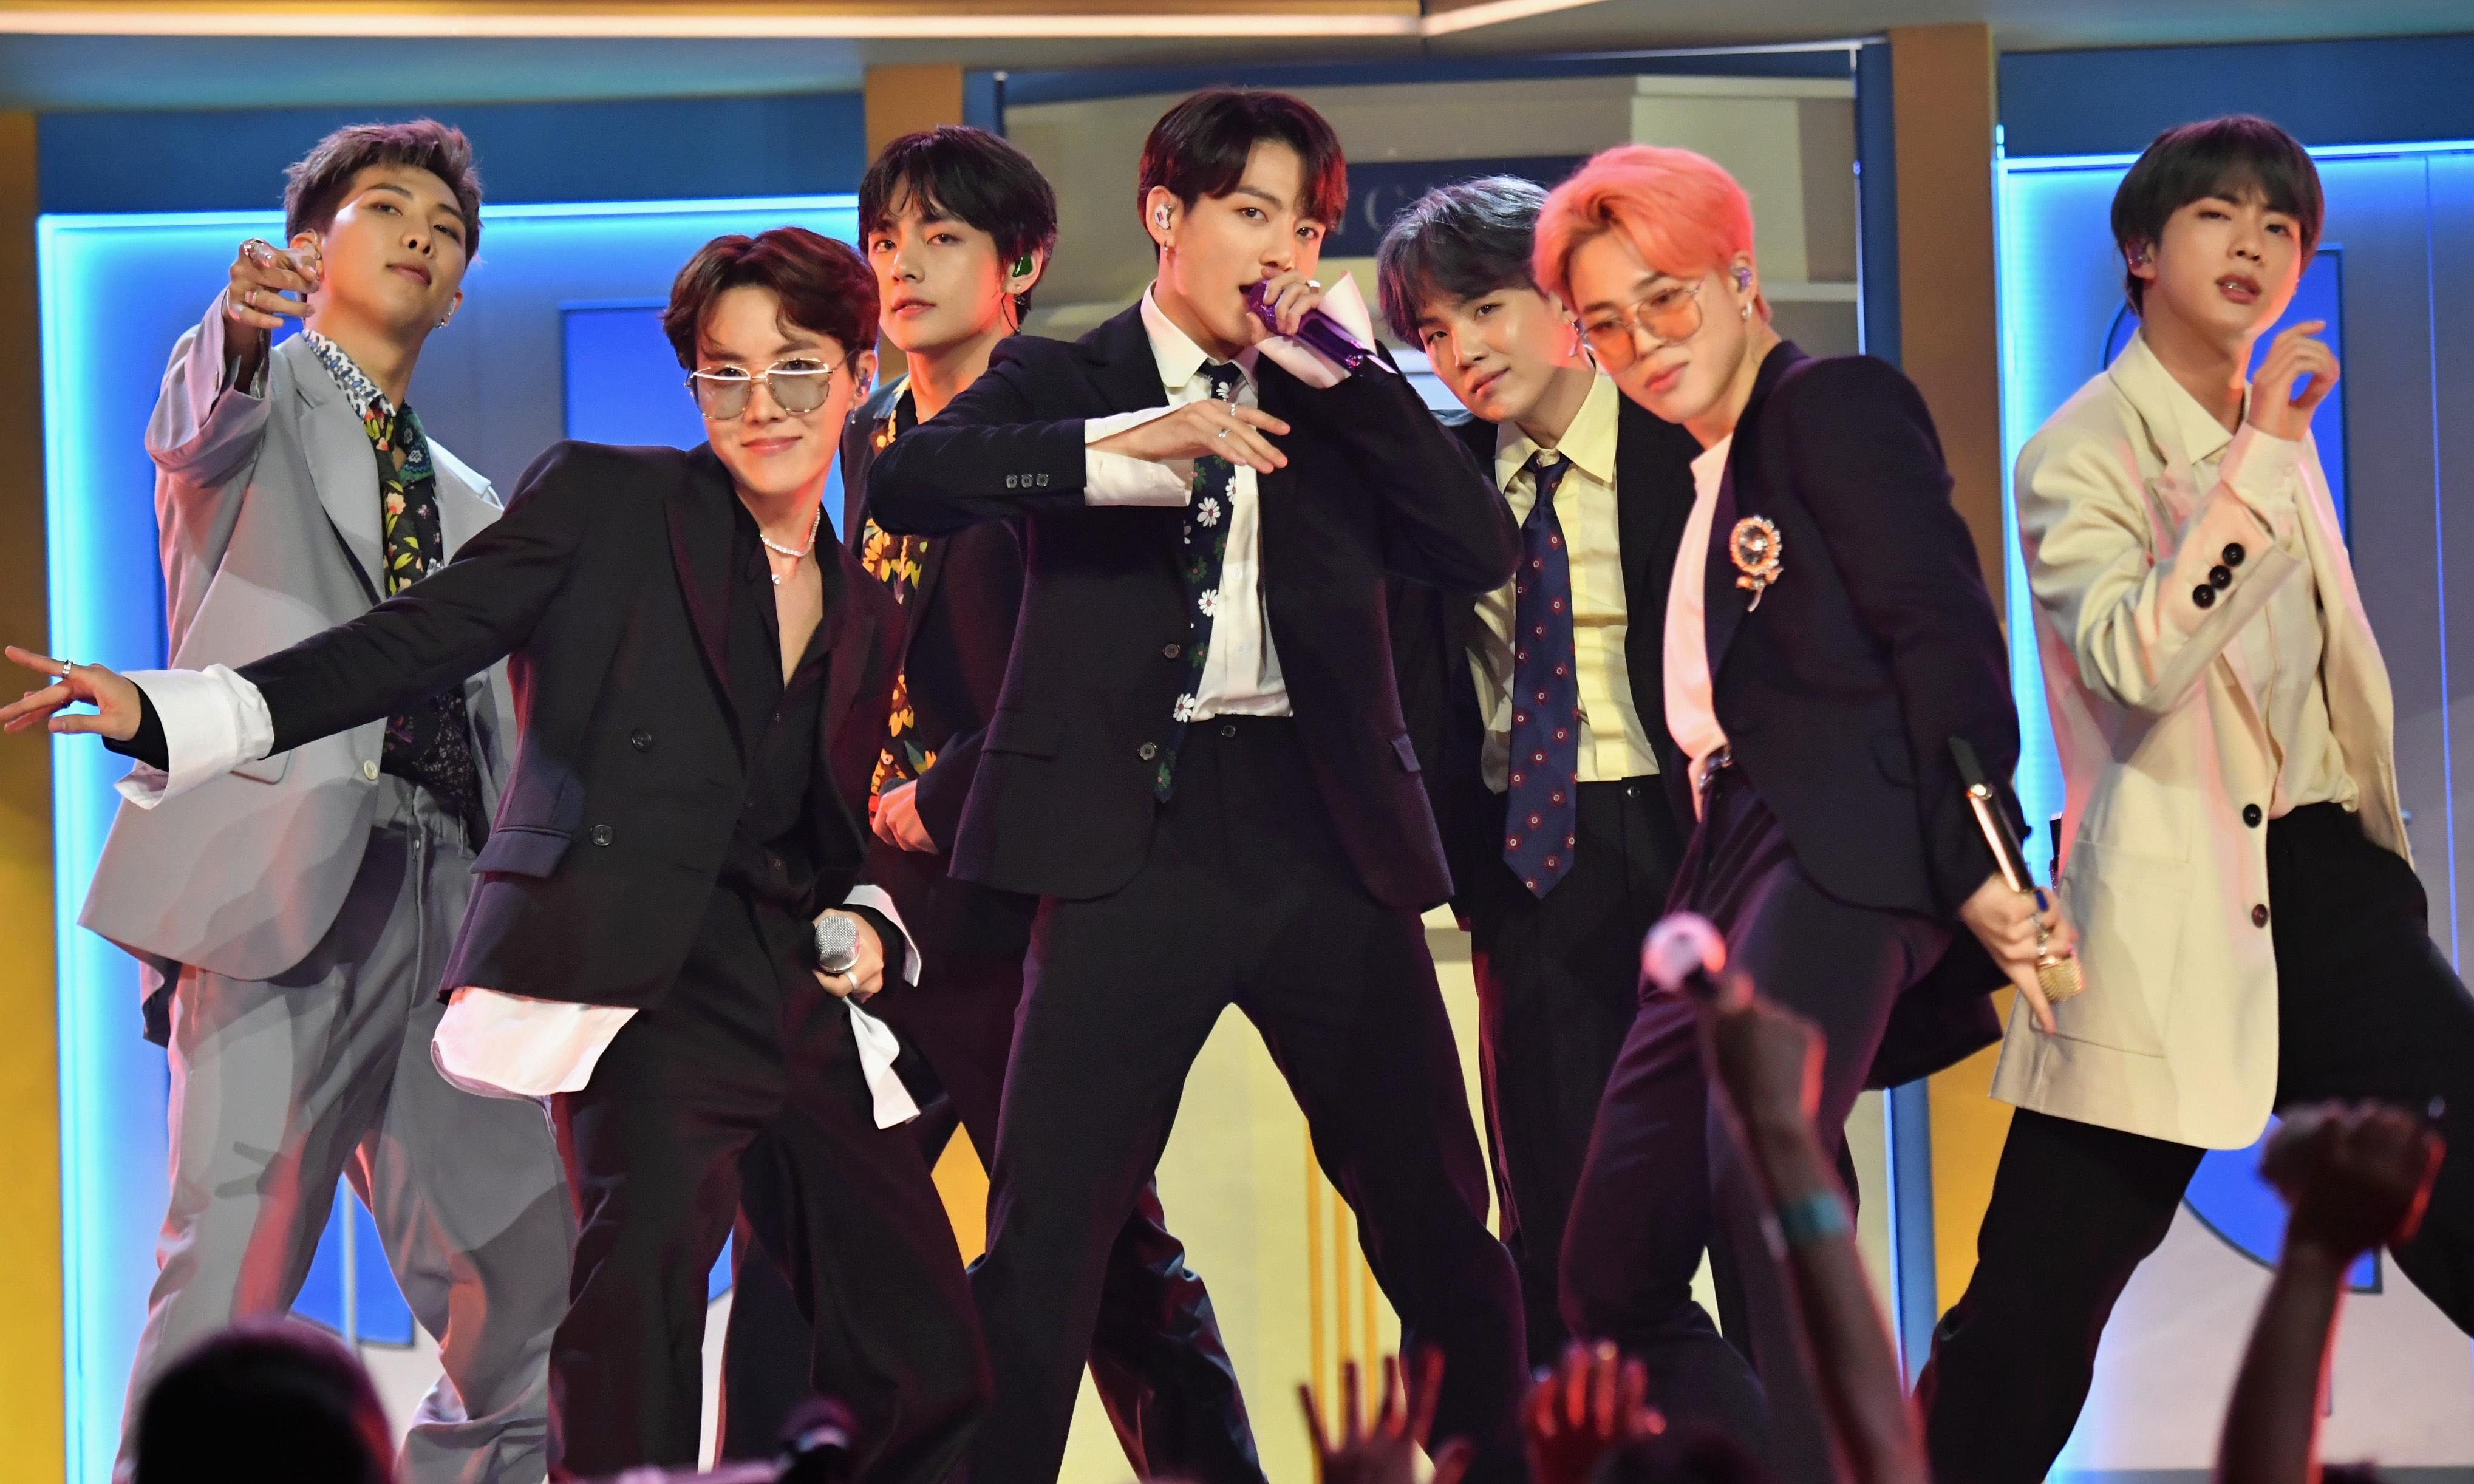 The week in media: Nine apologises after enraging fans of K-pop band BTS